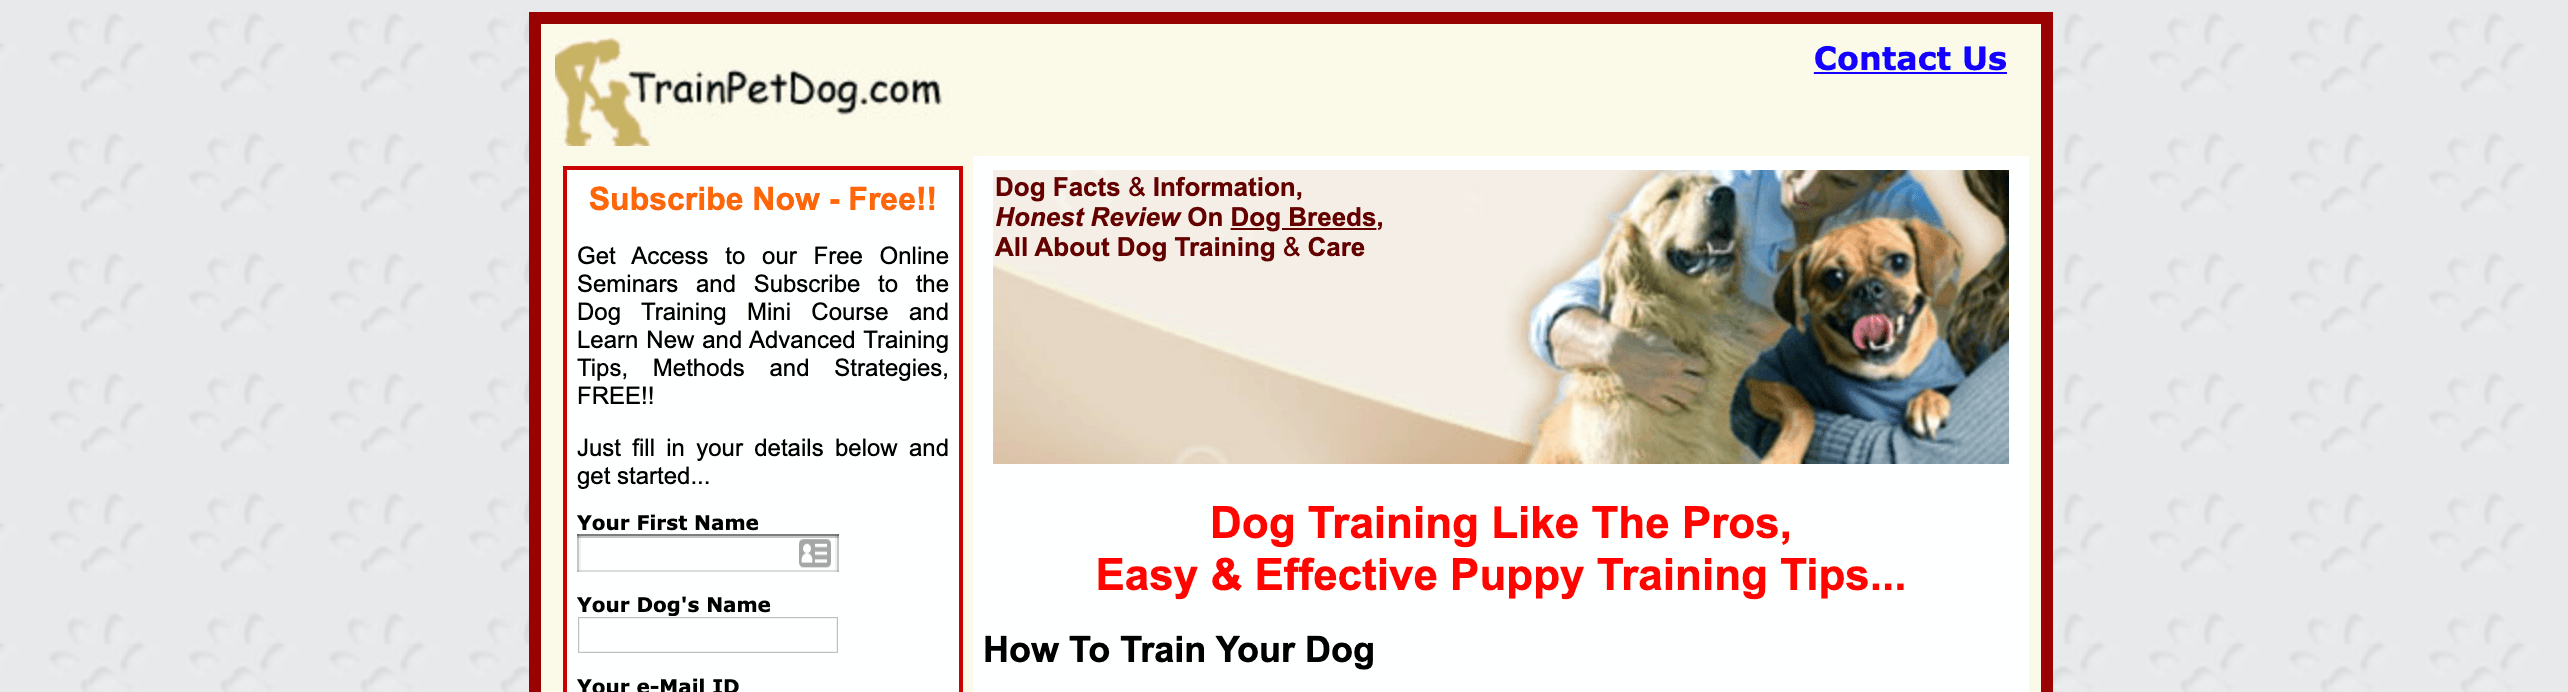 TrainPetDog Affiliate Program